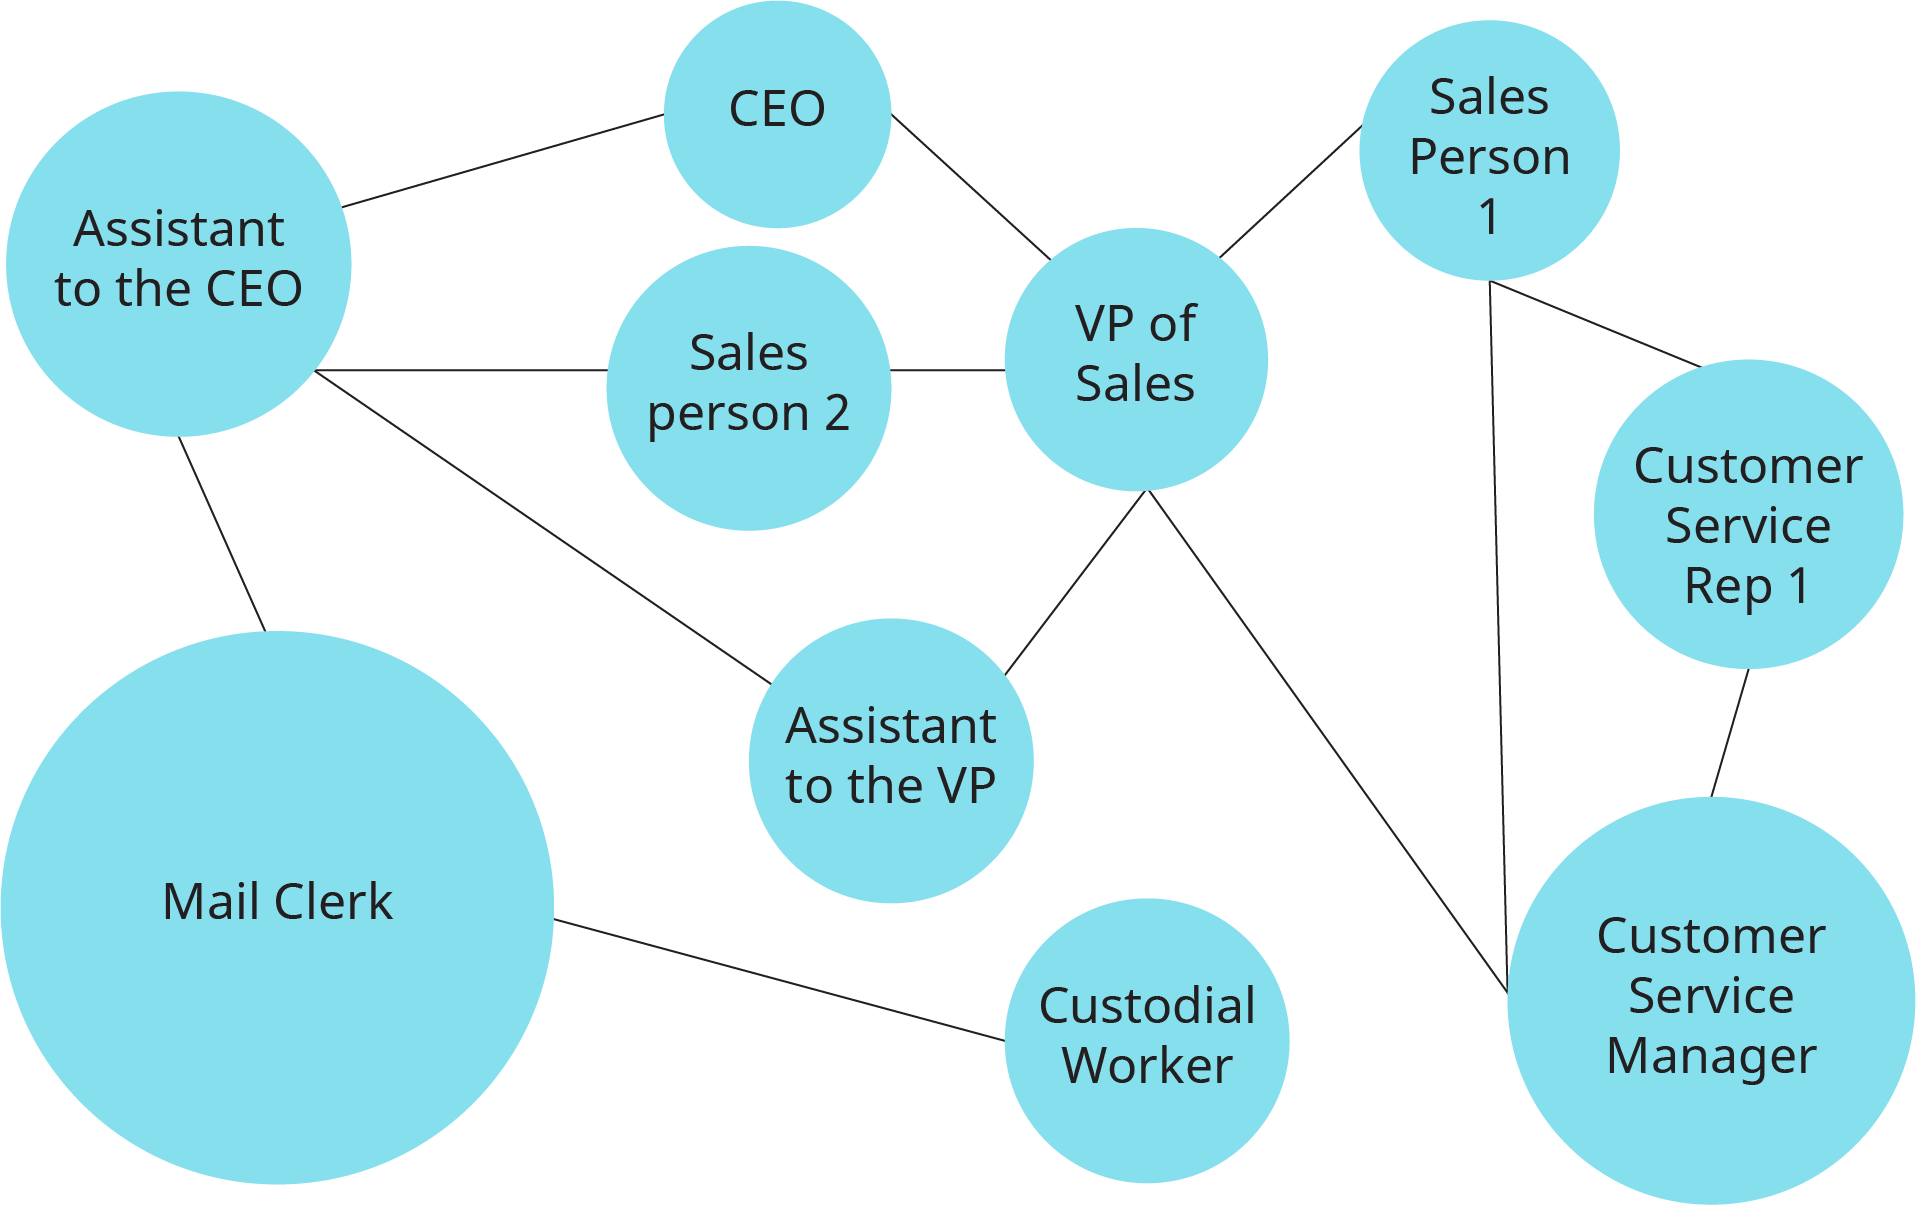 A flowchart shows a network map depicting the structure of an informal organization.